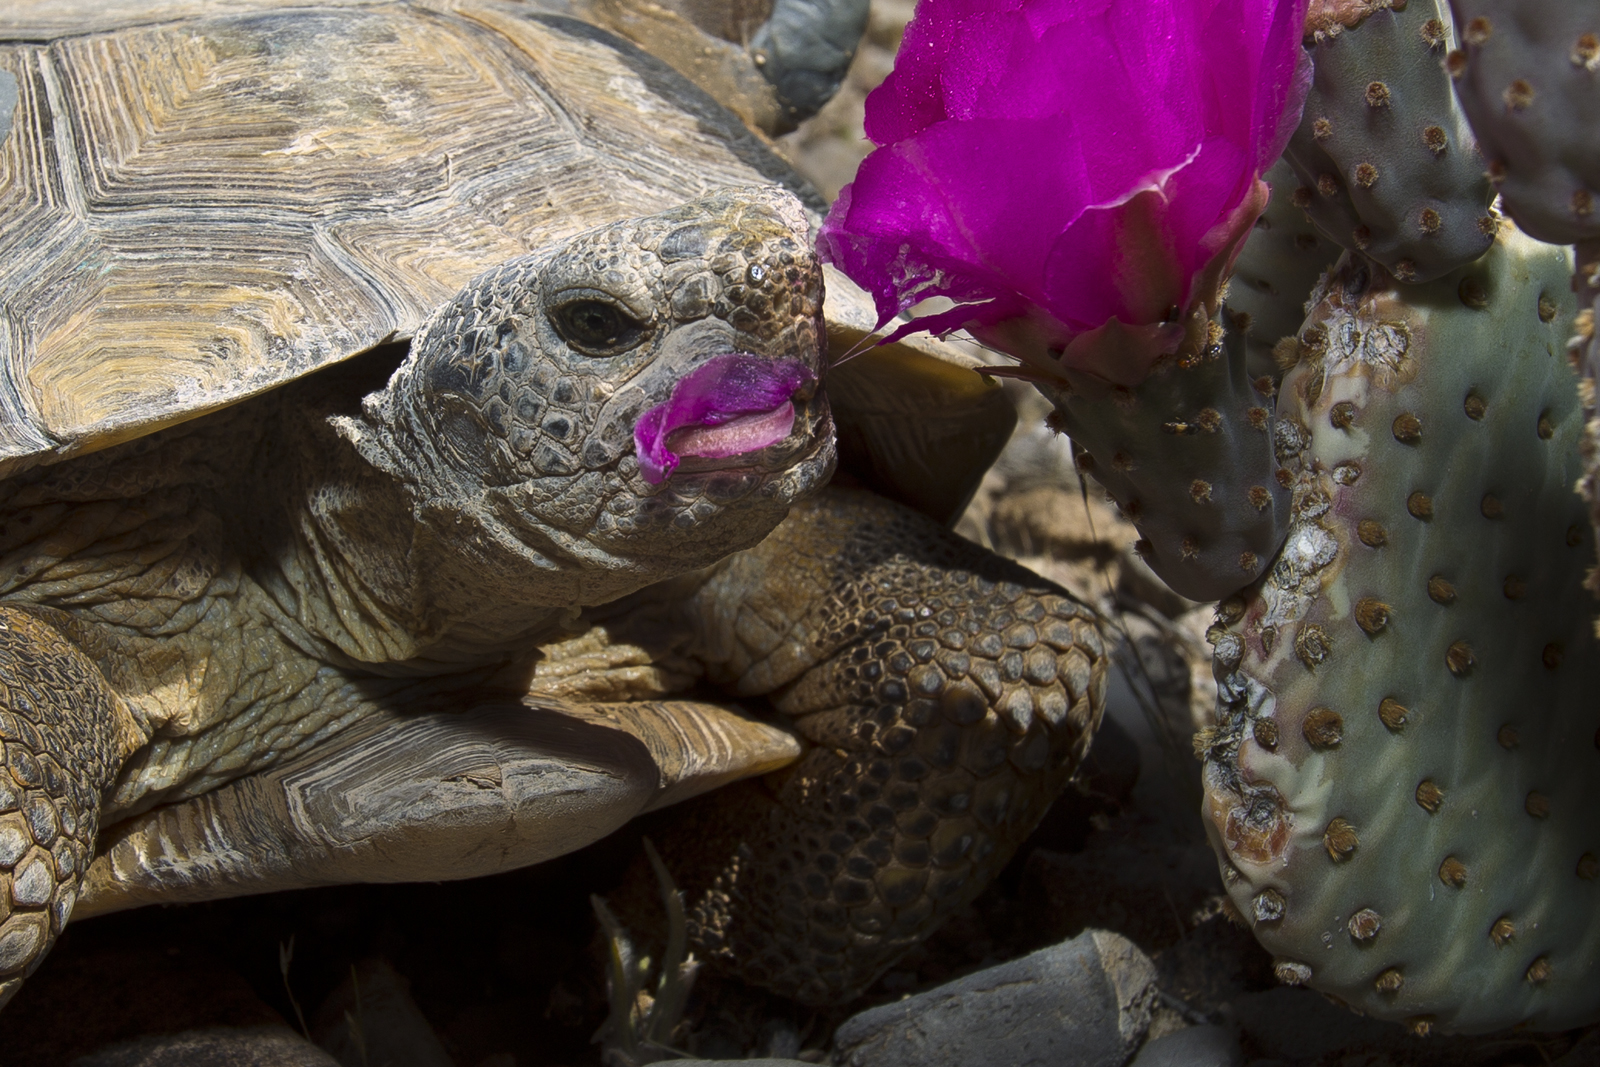 Desert tortoise eating a cactus flower